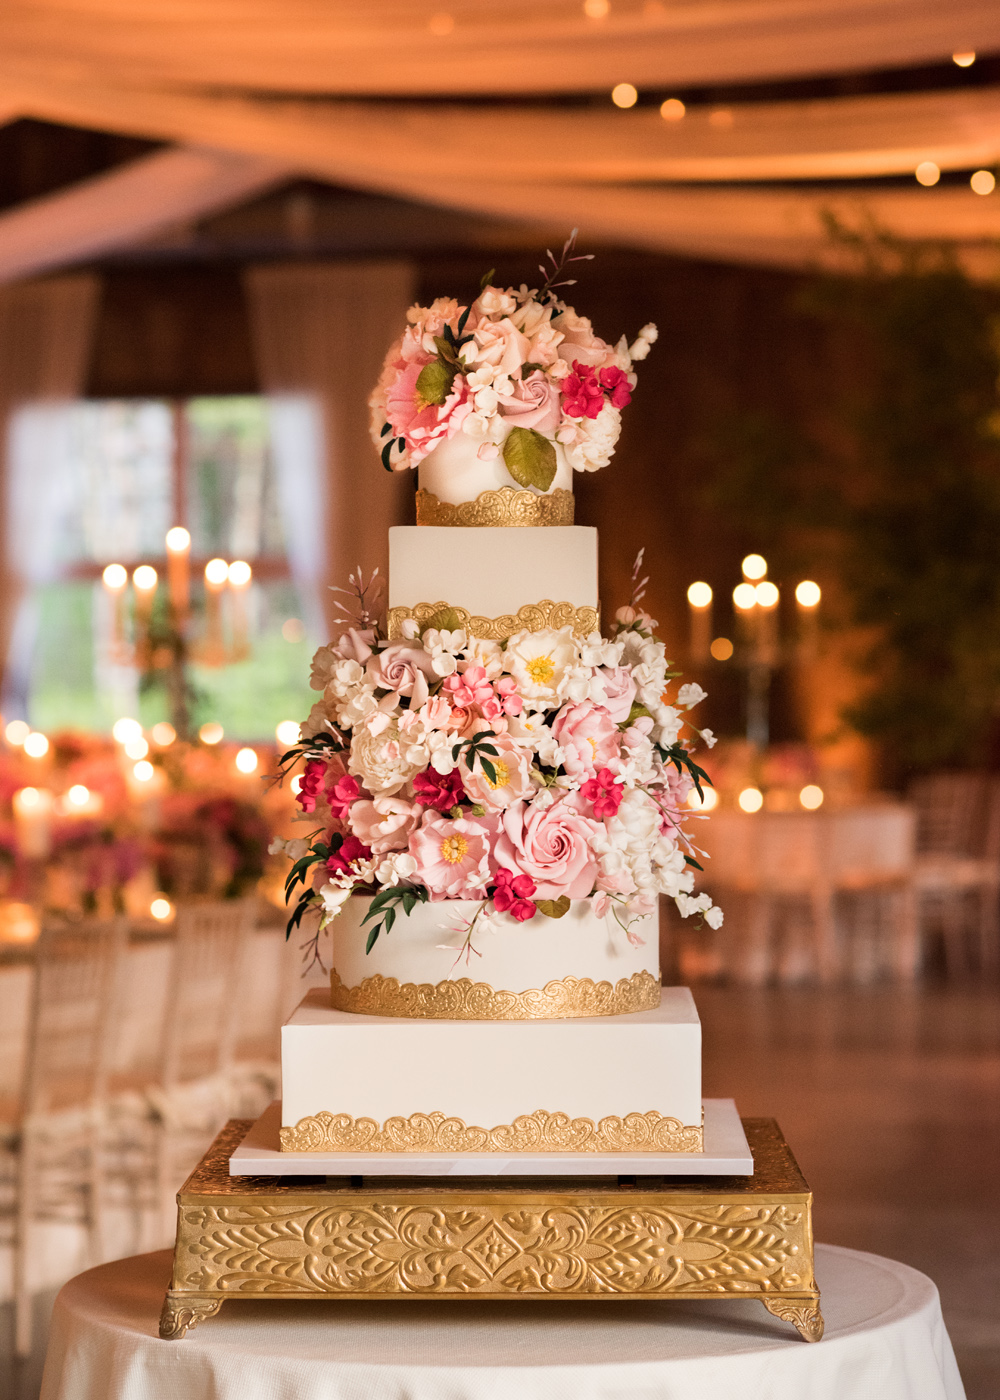 Wedding Cakes Pros And Cons Of Buttercream Vs Fondant Inside